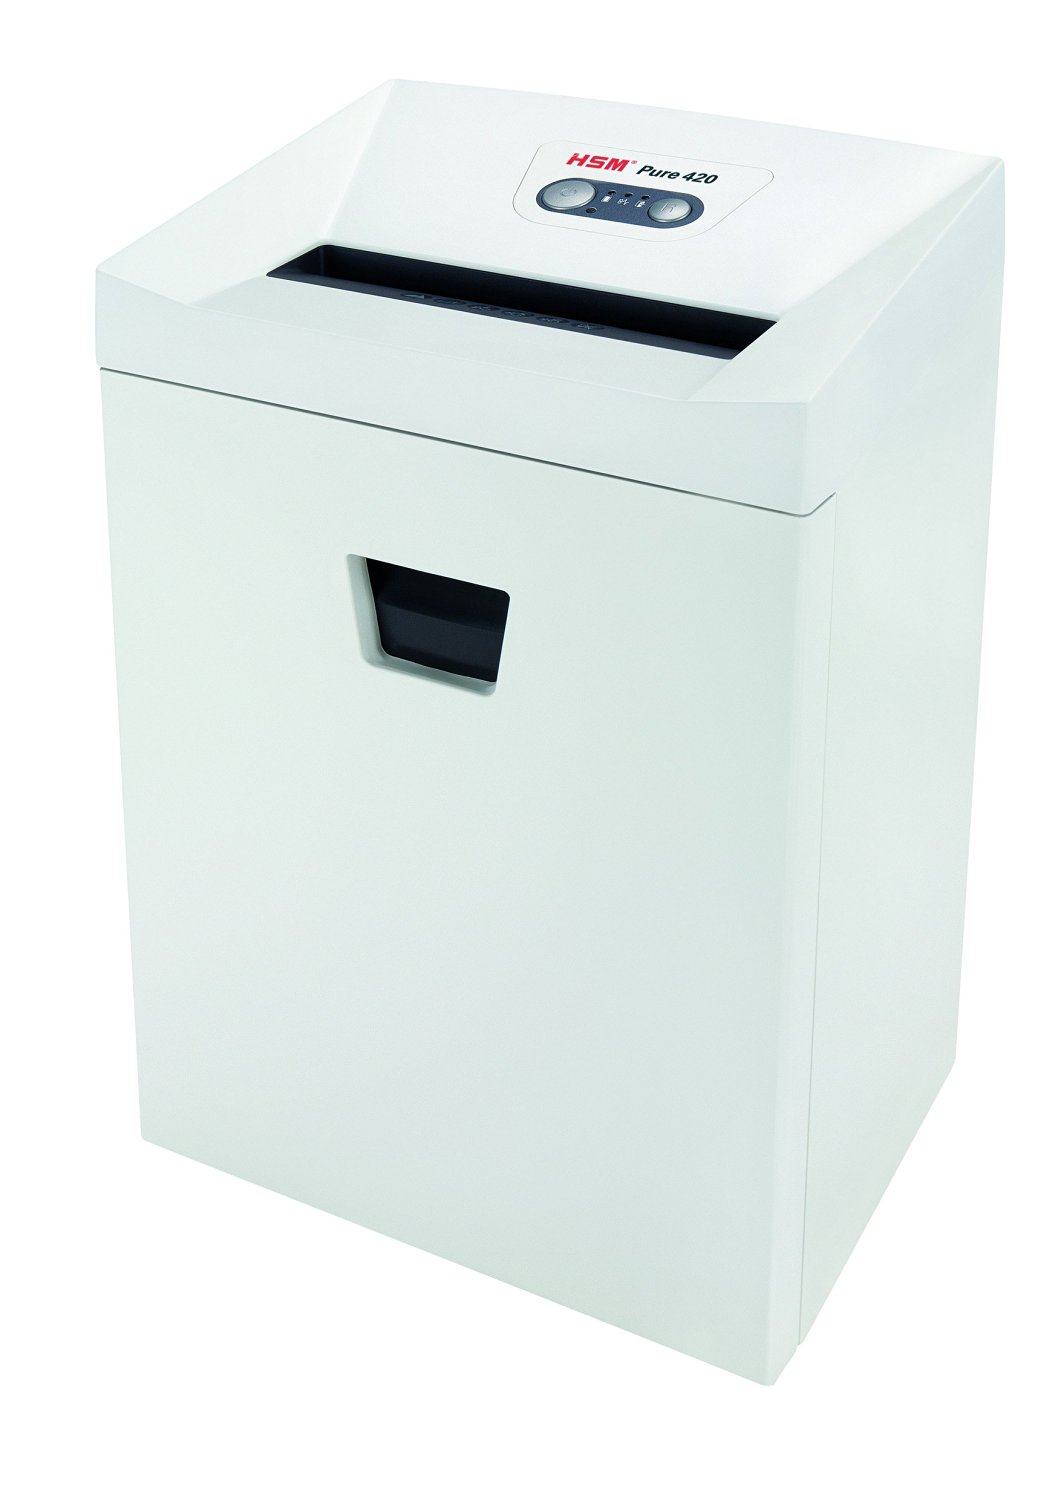 HSM Pure 420 Strip-Cut; Shreds up to 24 Sheets; 9.2-Gallon Capacity Continuous Operation Shredder